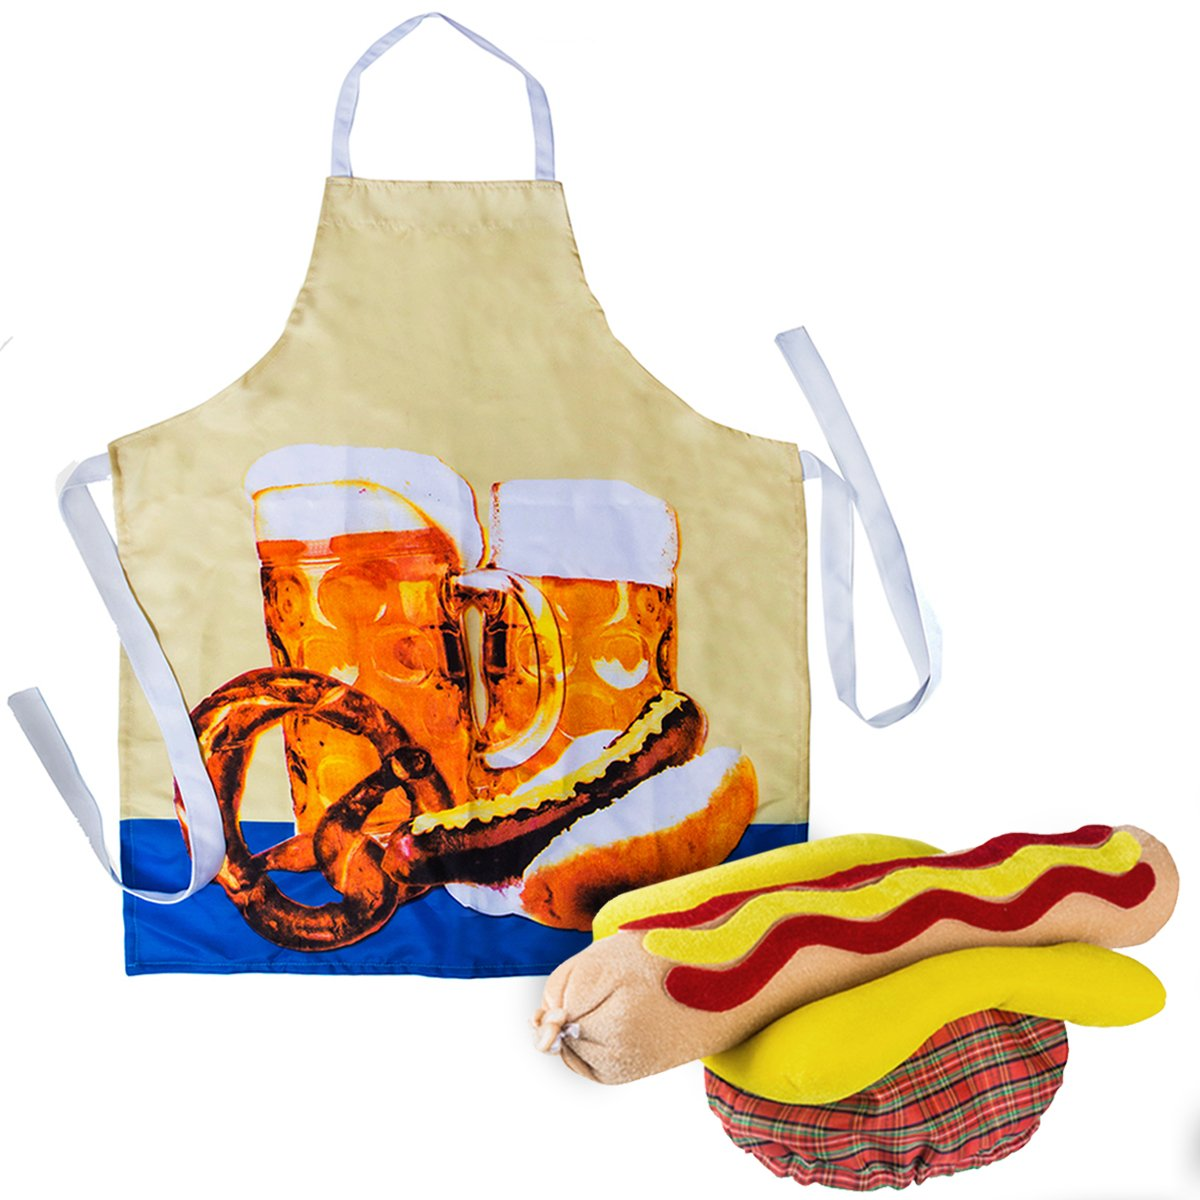 Hot Dog Costume - Chefs Apron and Hat - Hot Dog Costume - Food Costume - Food Hats by Tigerdoe by Tigerdoe